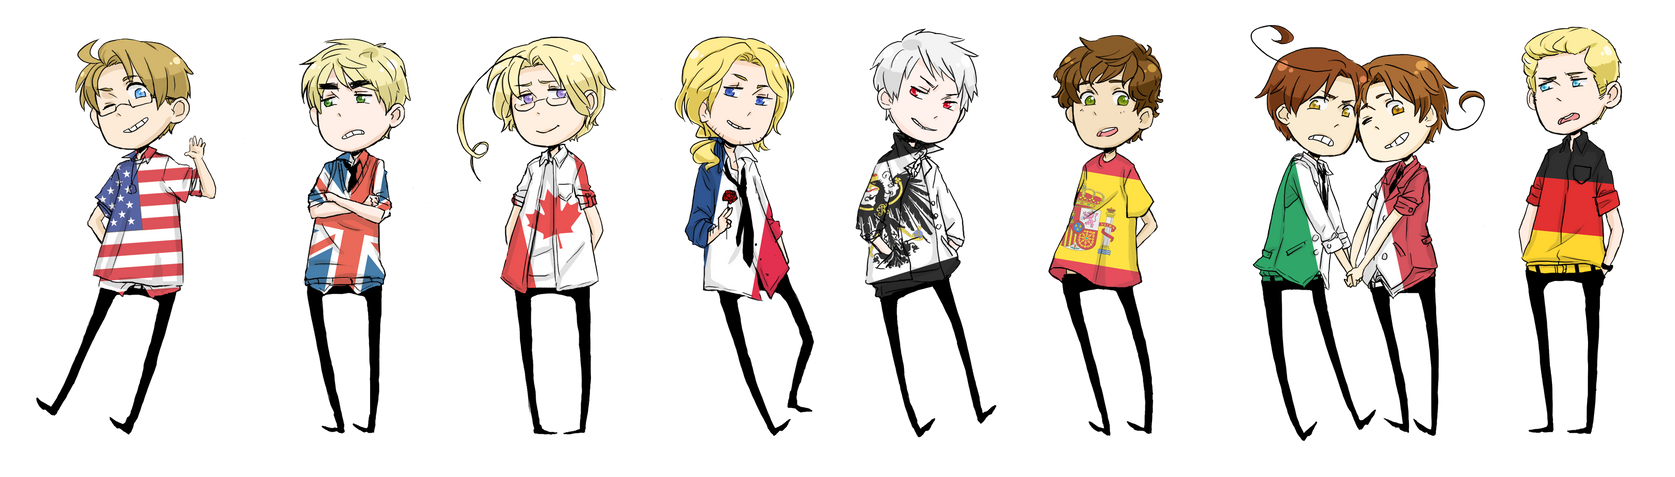 Hetalia wall chibi things by shinyunicorntears